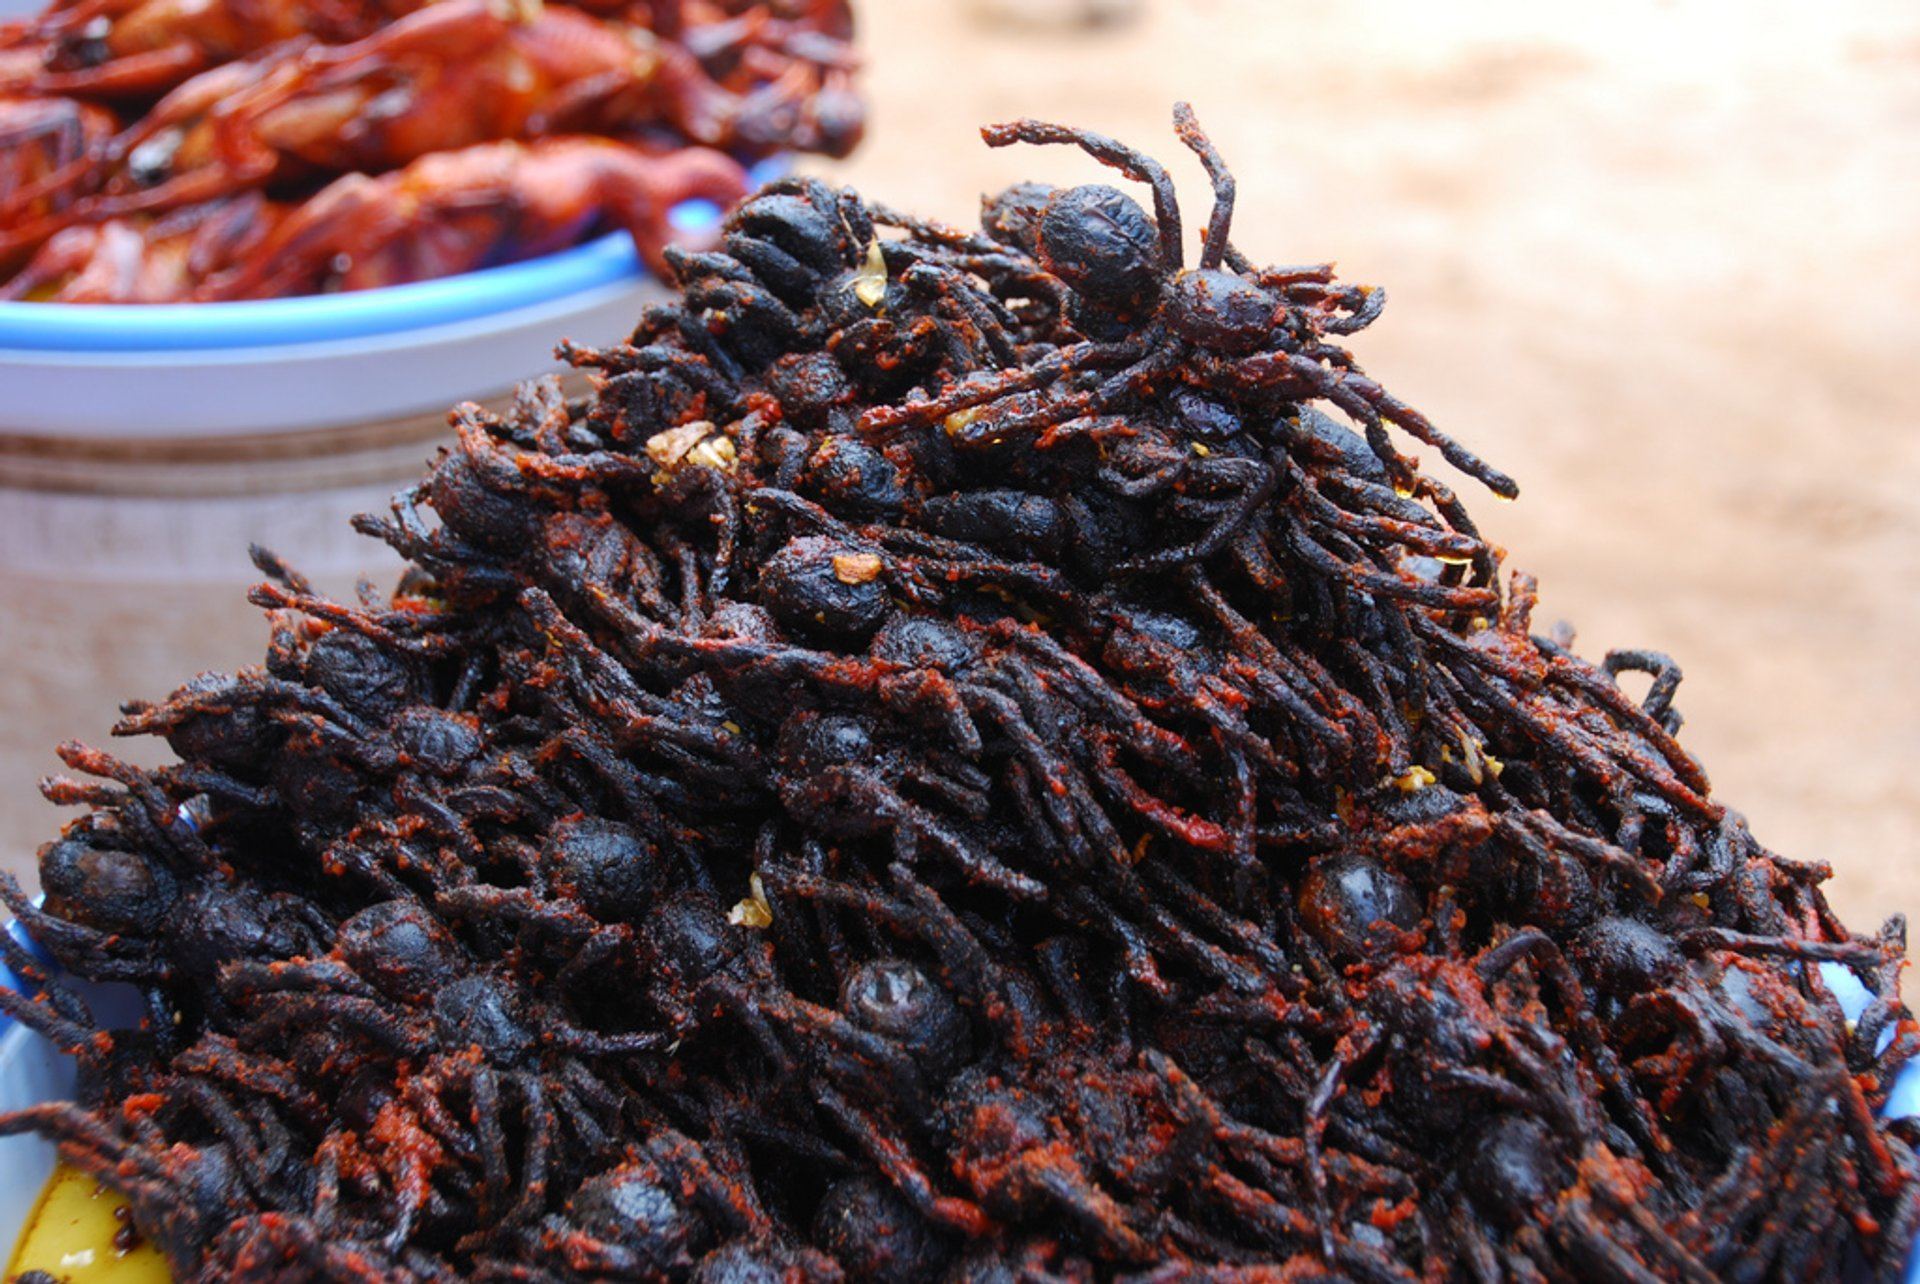 Fried Spiders in Cambodia 2019 - Best Time